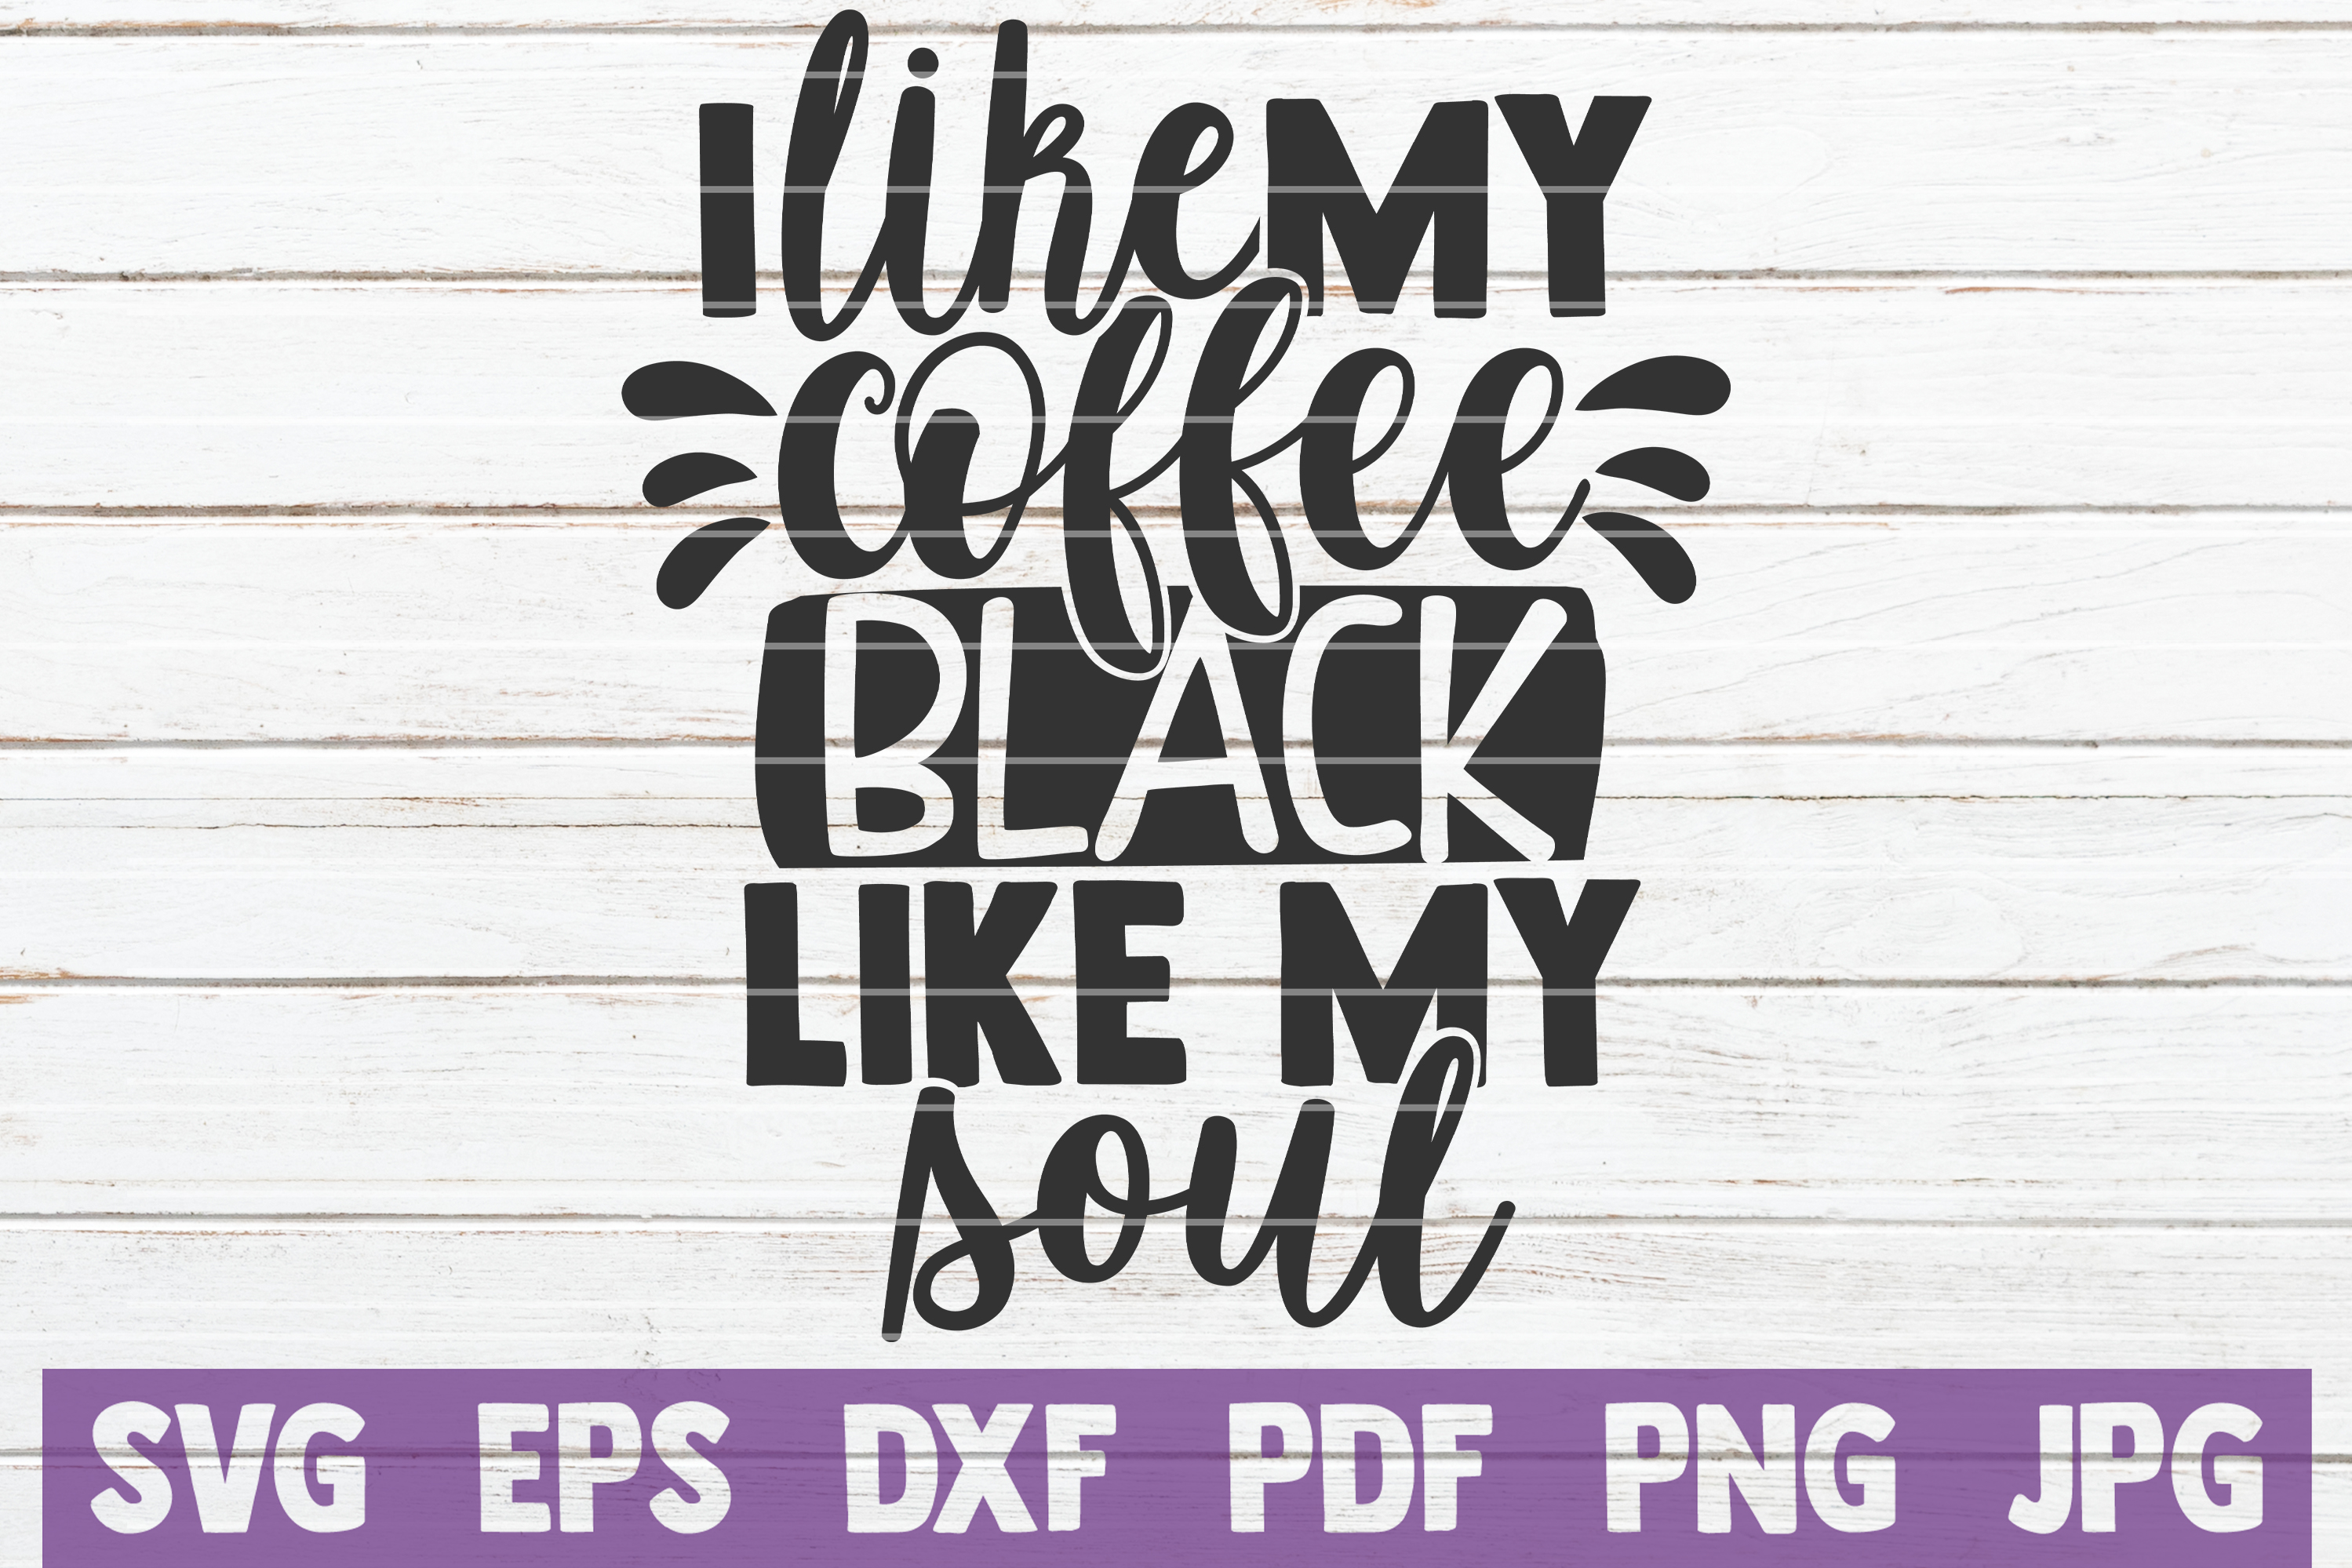 Download Free I Like My Coffee Black Like My Soul Graphic By Mintymarshmallows for Cricut Explore, Silhouette and other cutting machines.